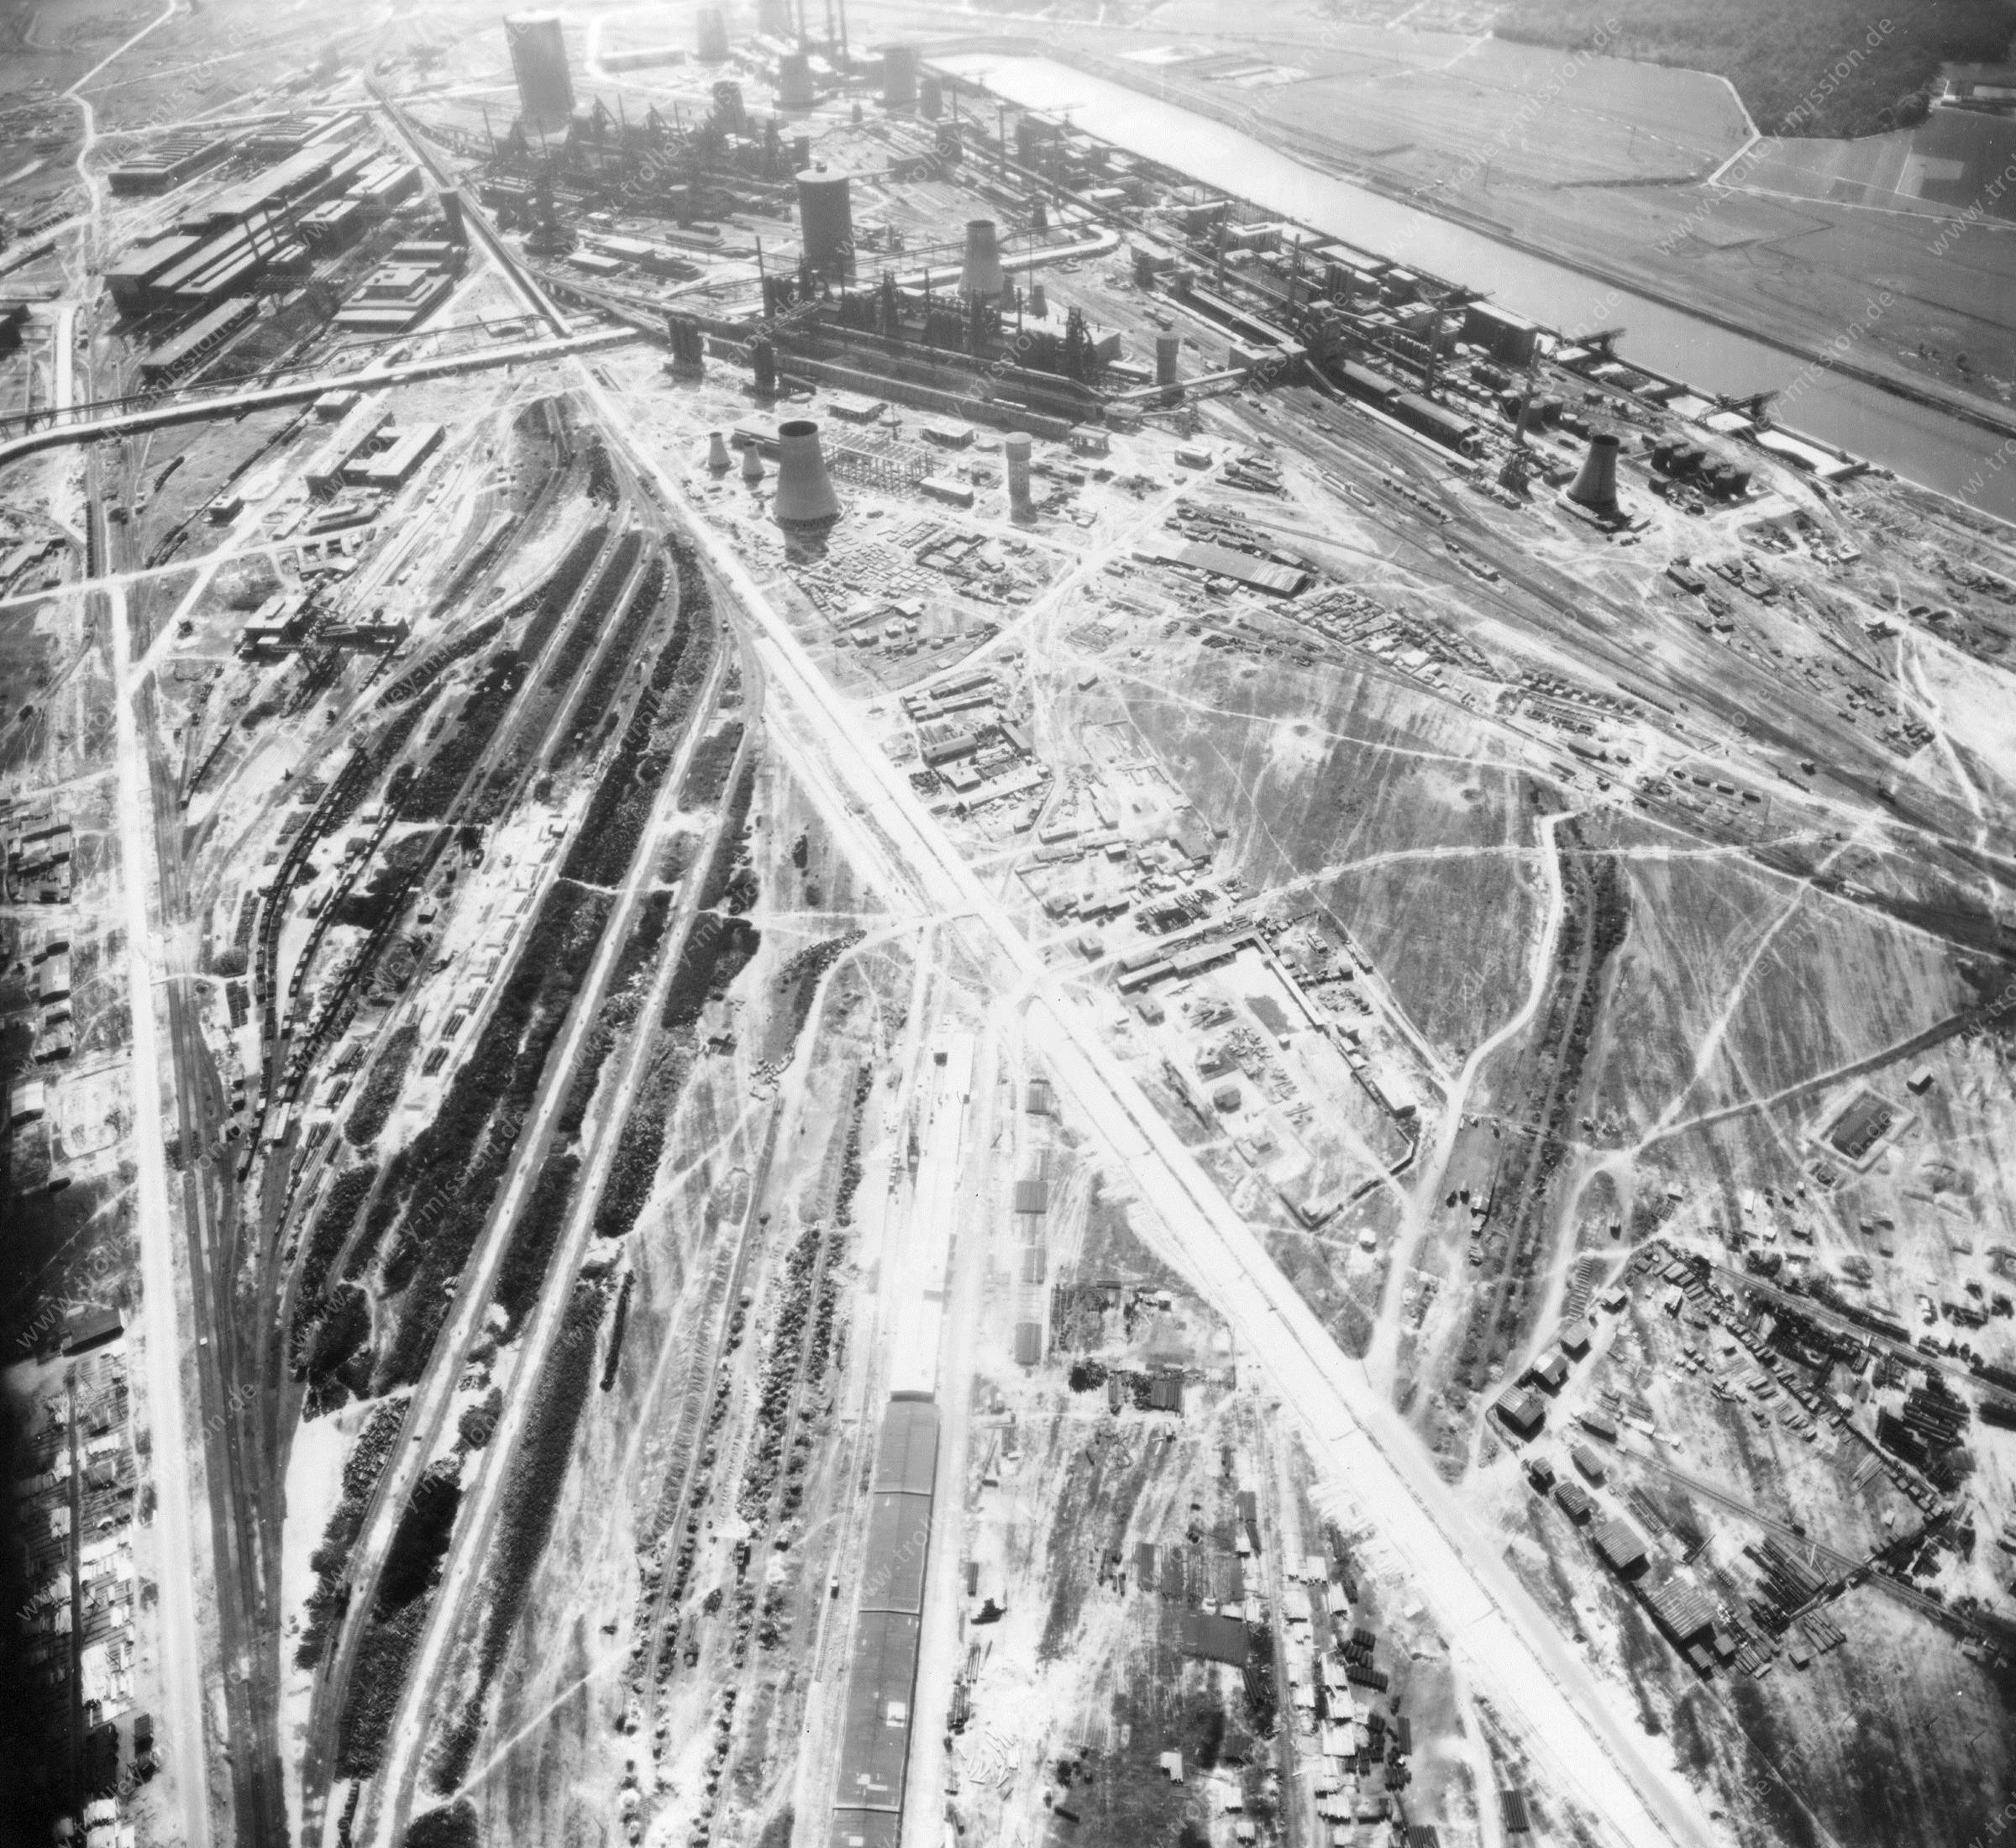 Salzgitter Reichswerke Hermann Göring from above: Aerial view after Allied air raids in World War II